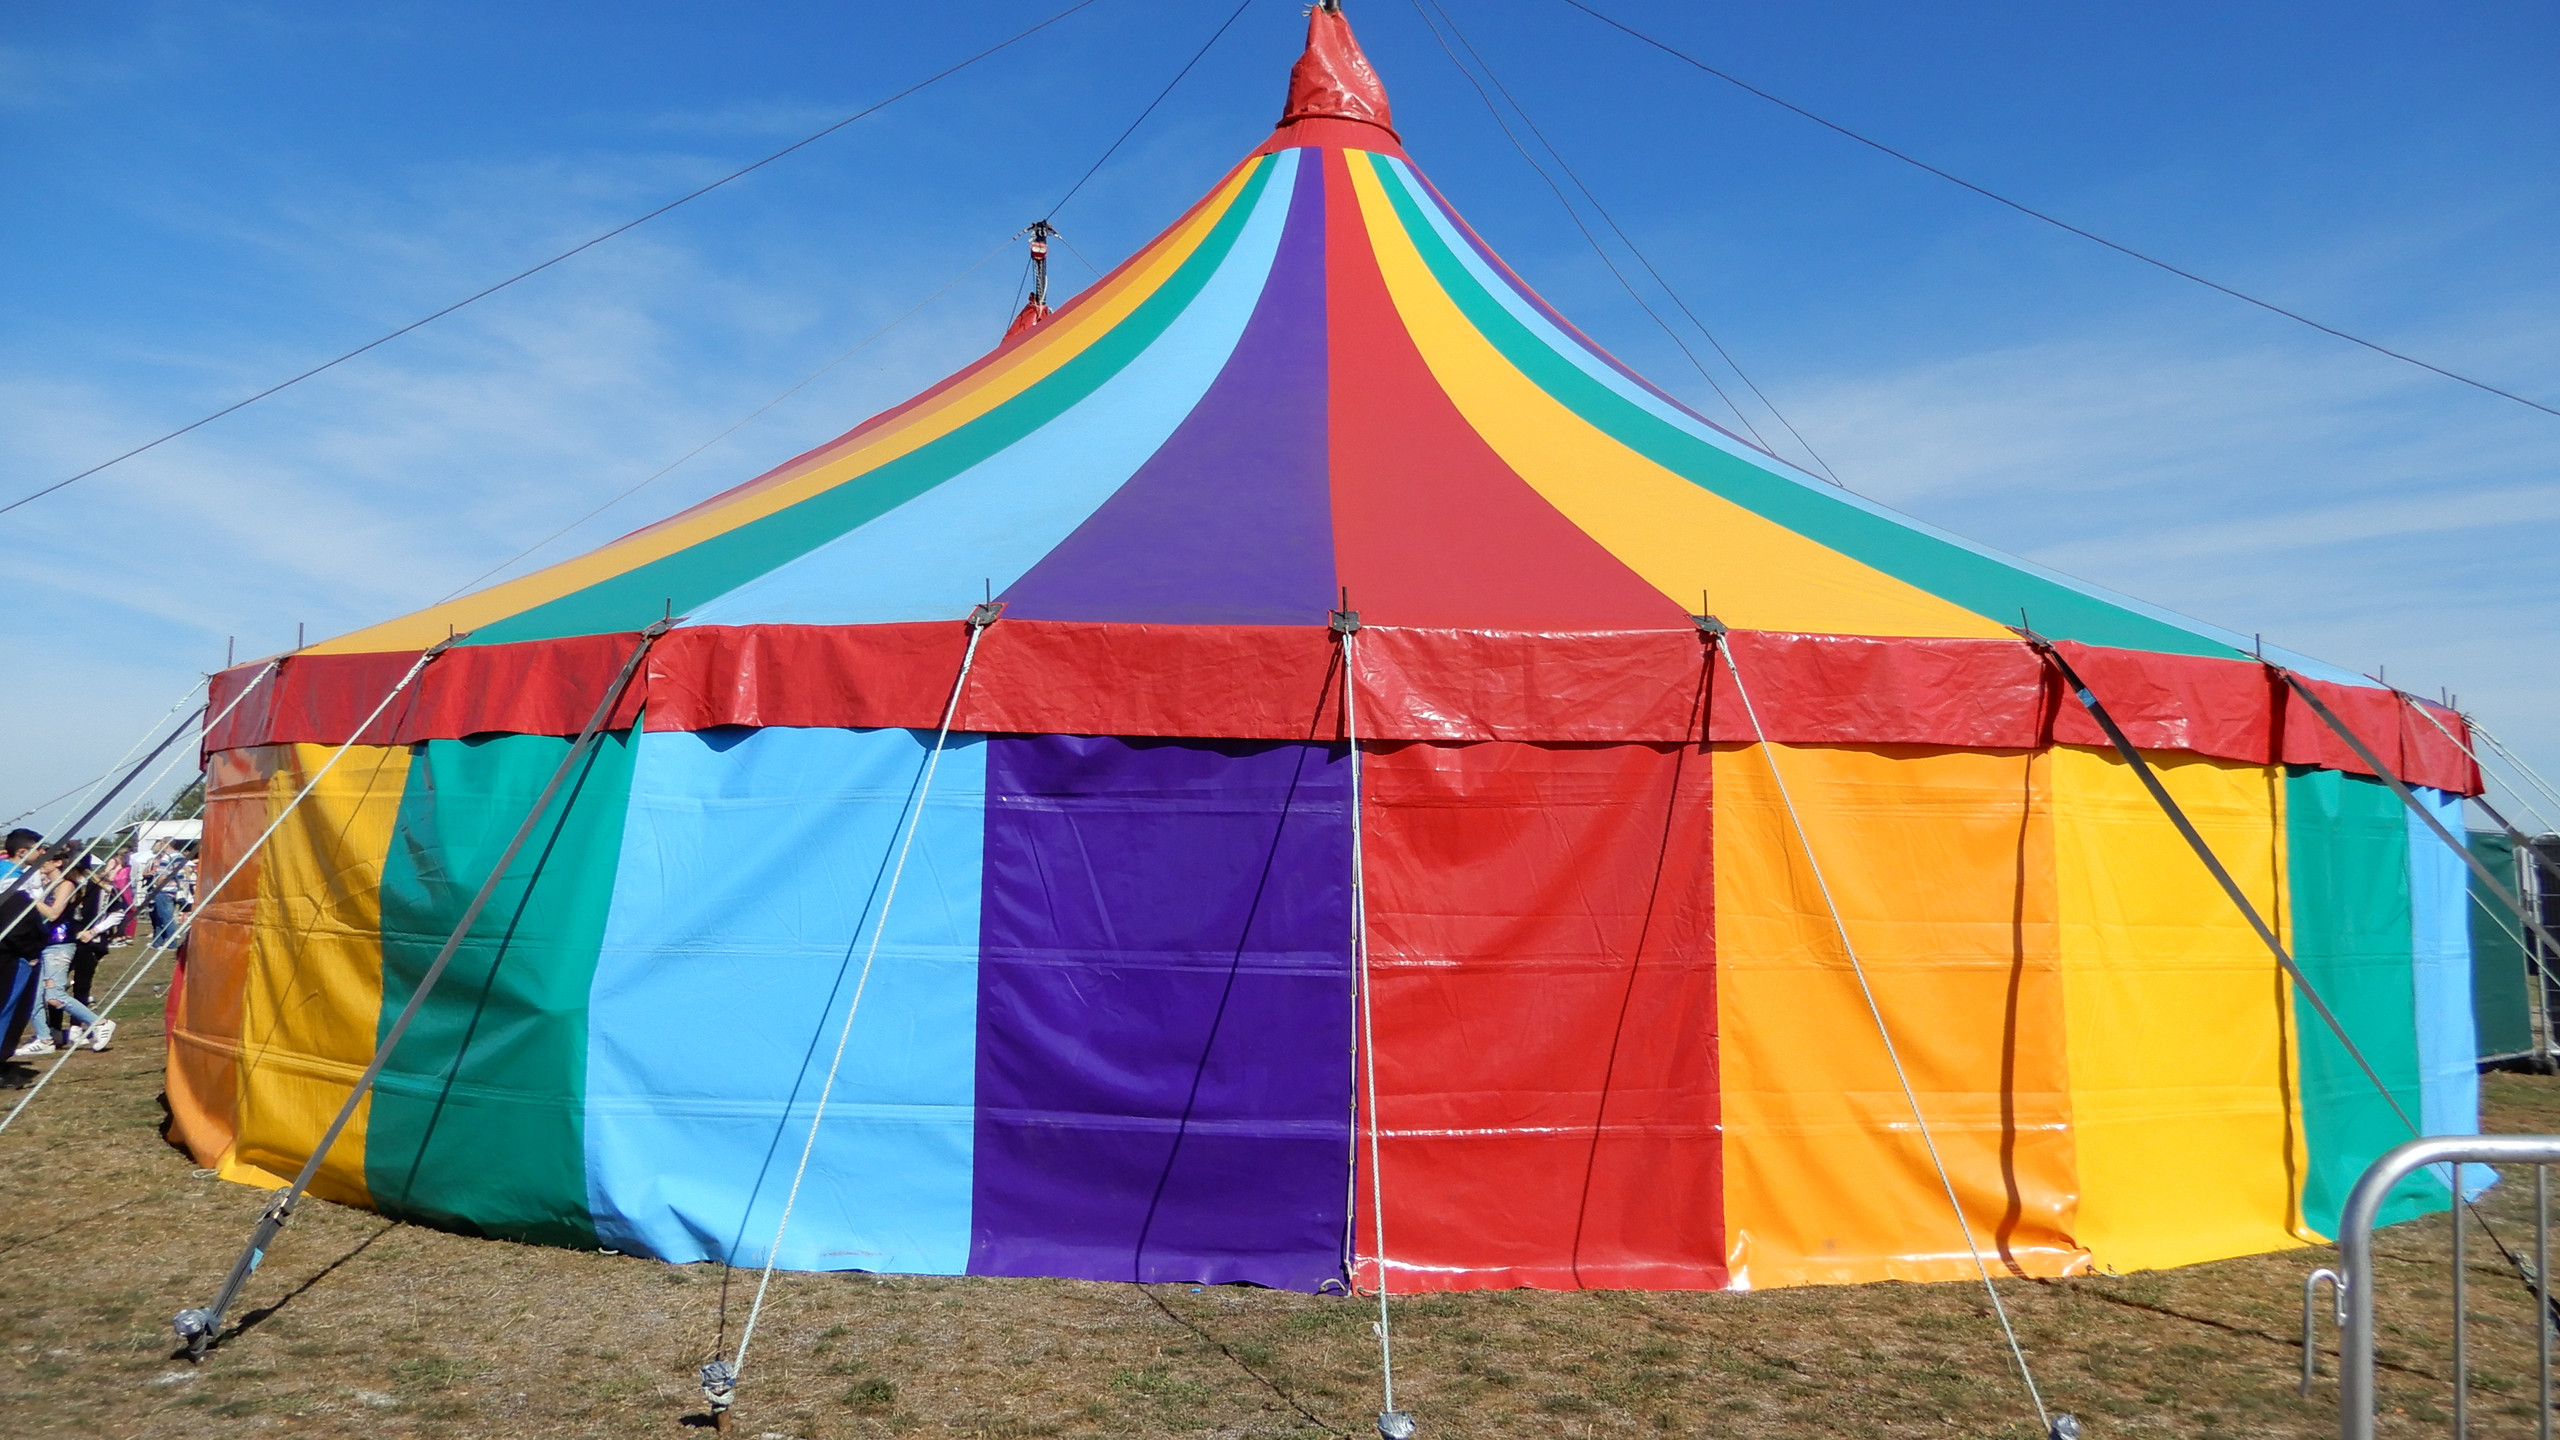 Music tent of rainbows